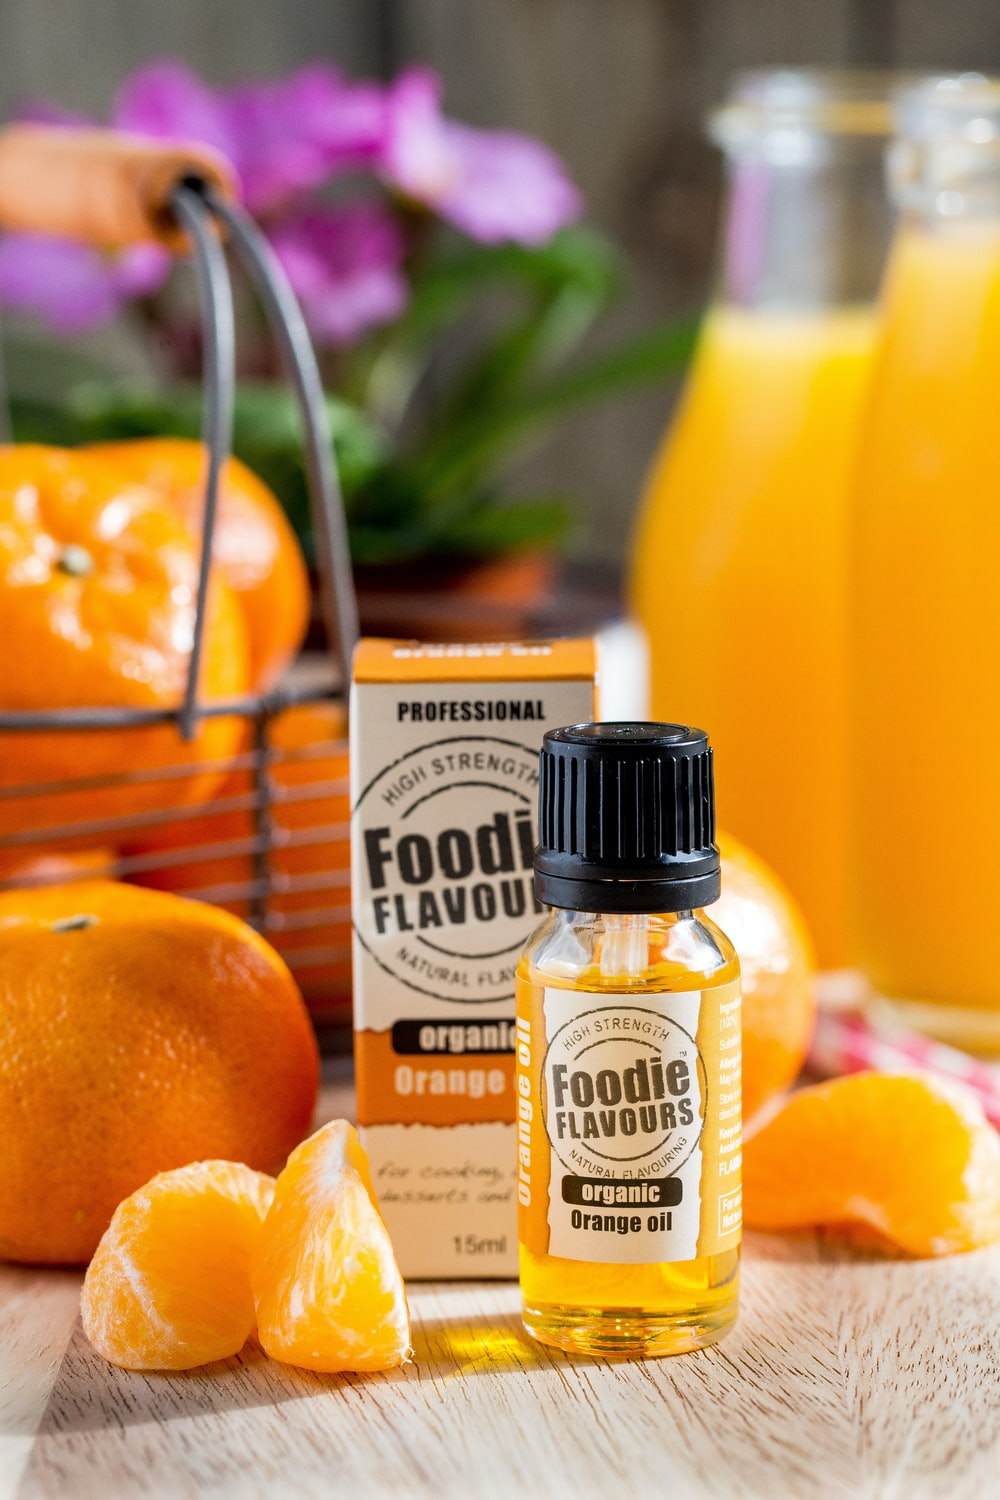 Foodi Flavour bottle with box